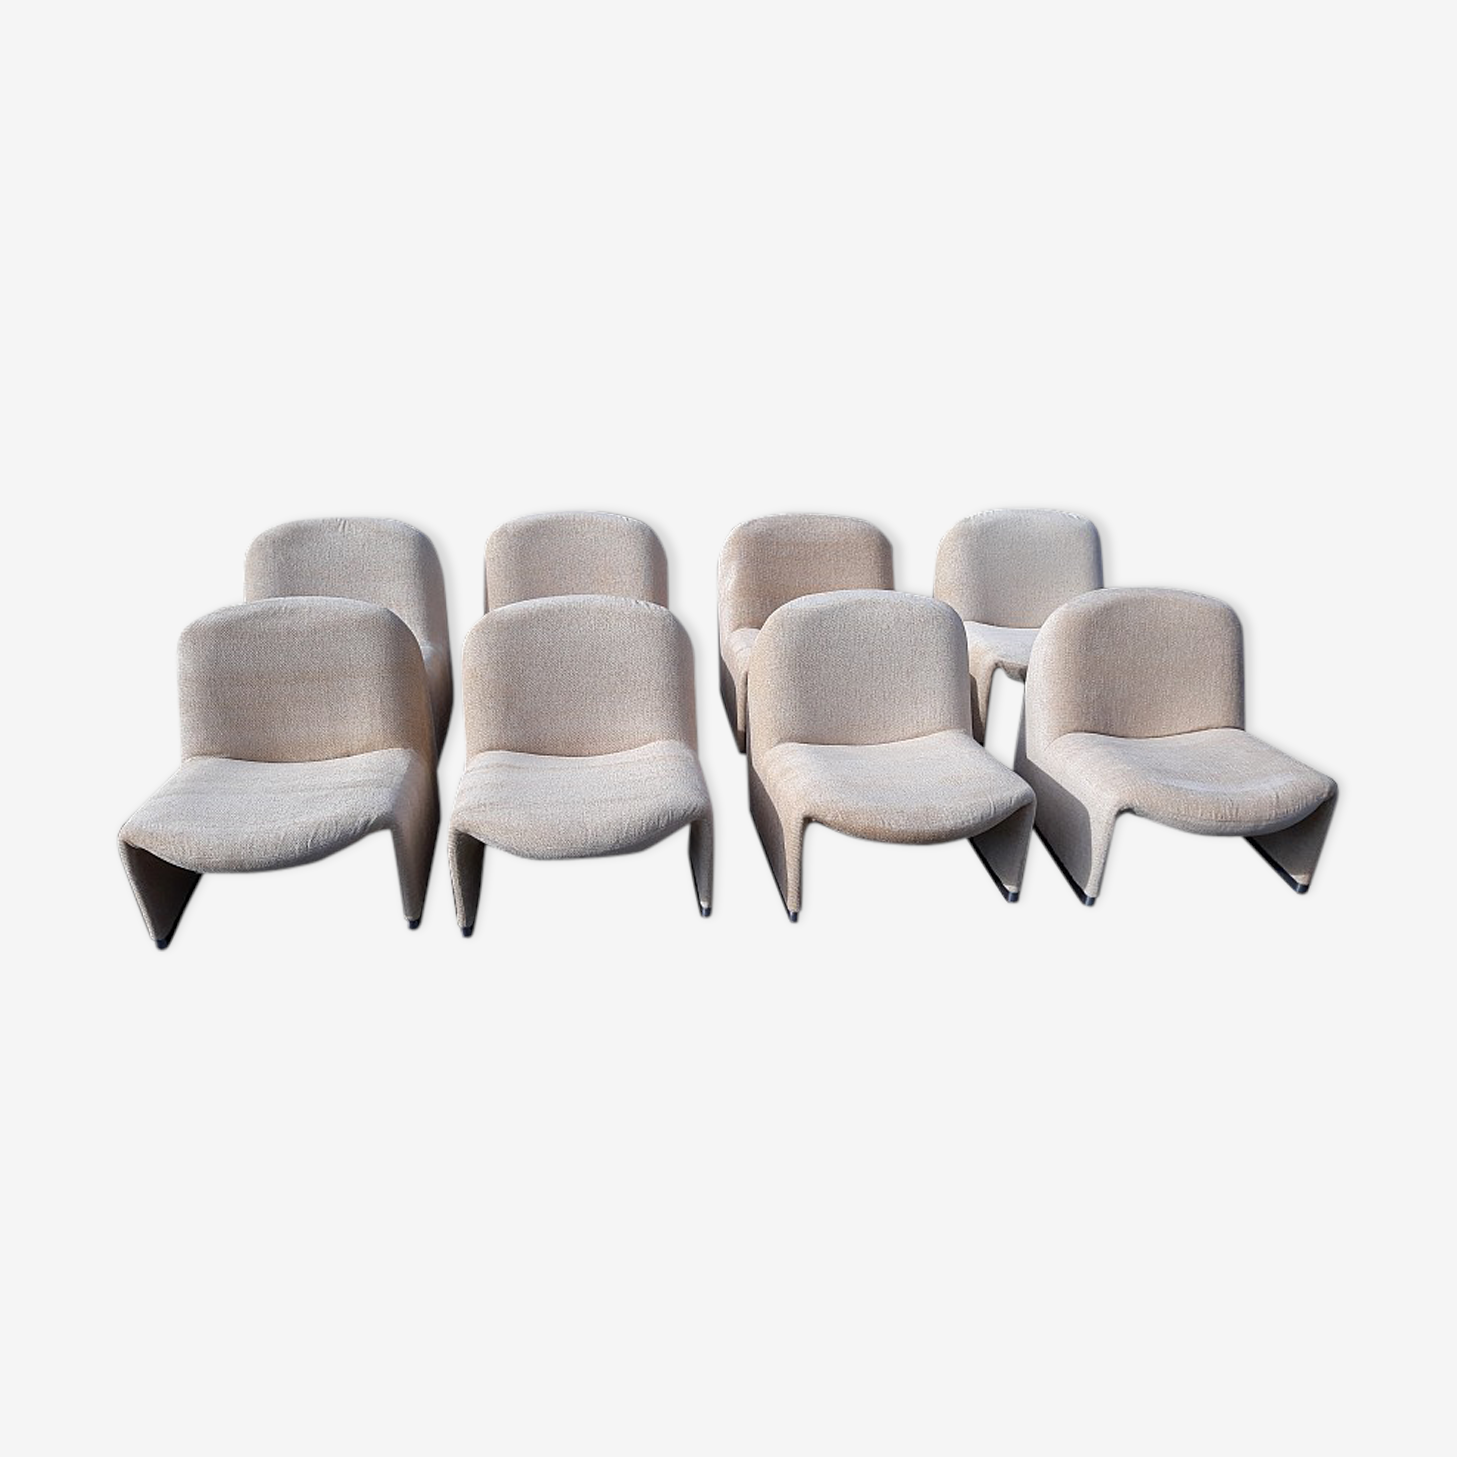 Armchairs Alky by Giancarlo Piretti  for Castelli